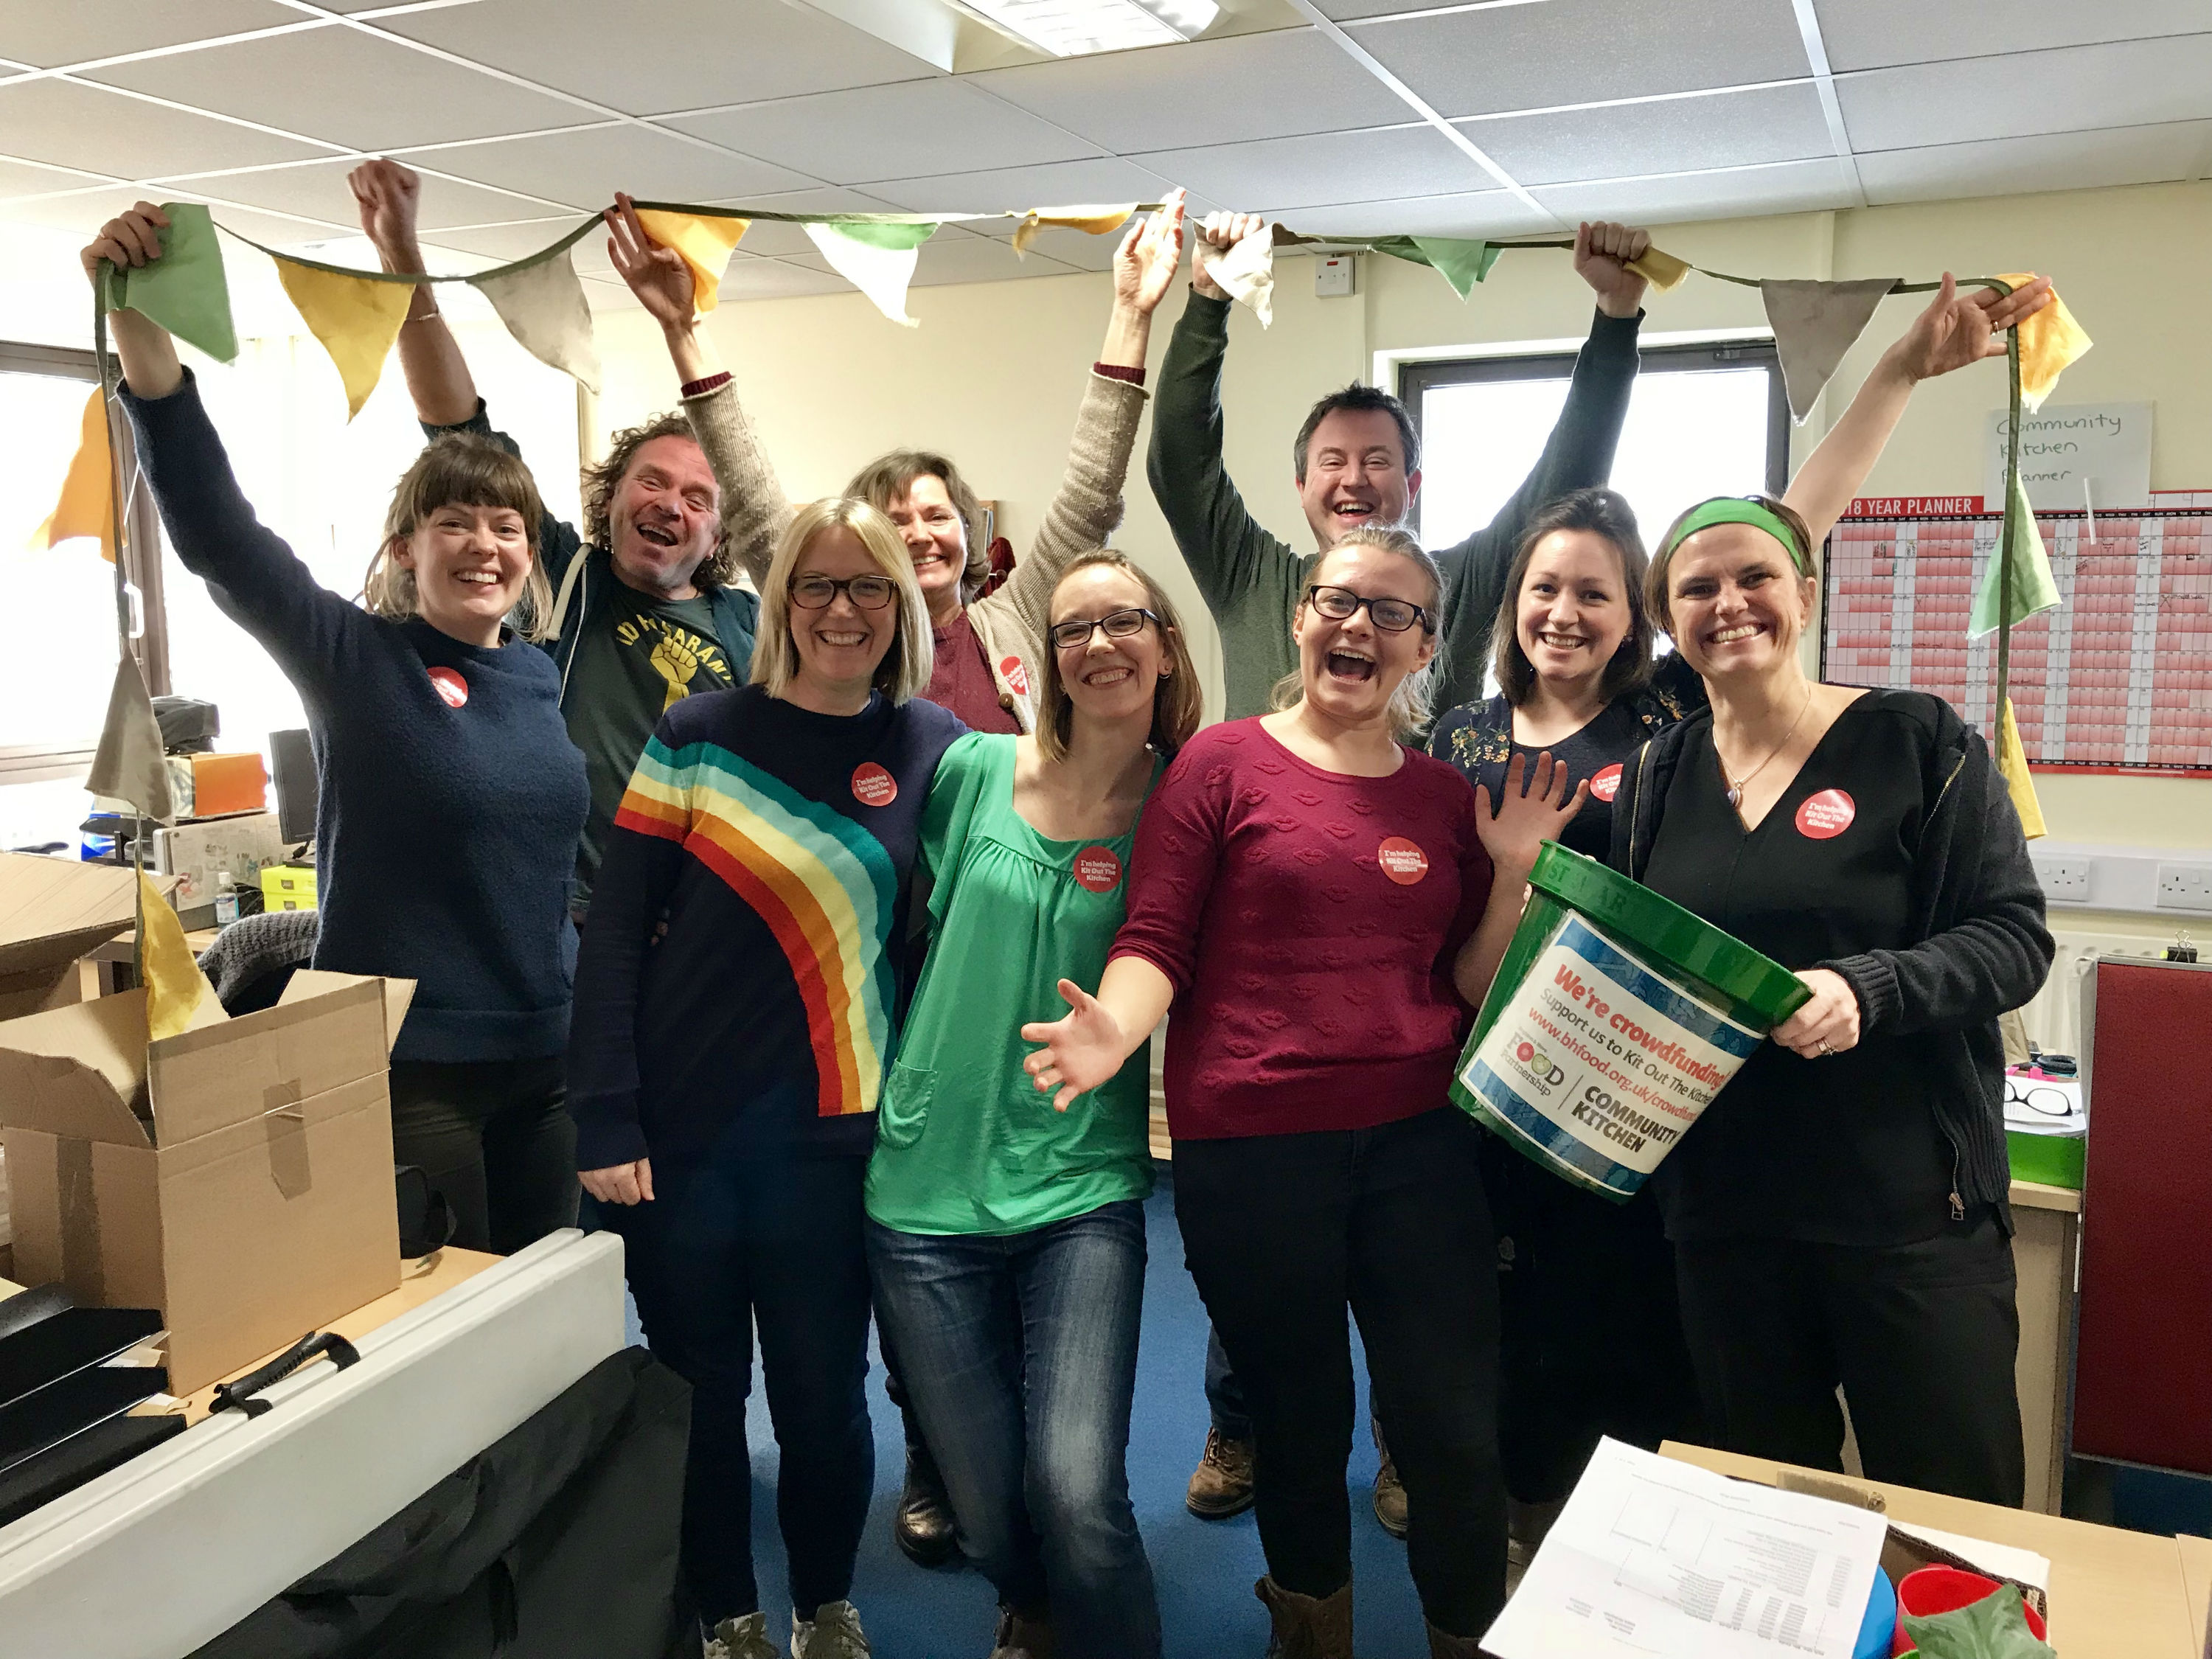 Food Partnership staff cheering in their office